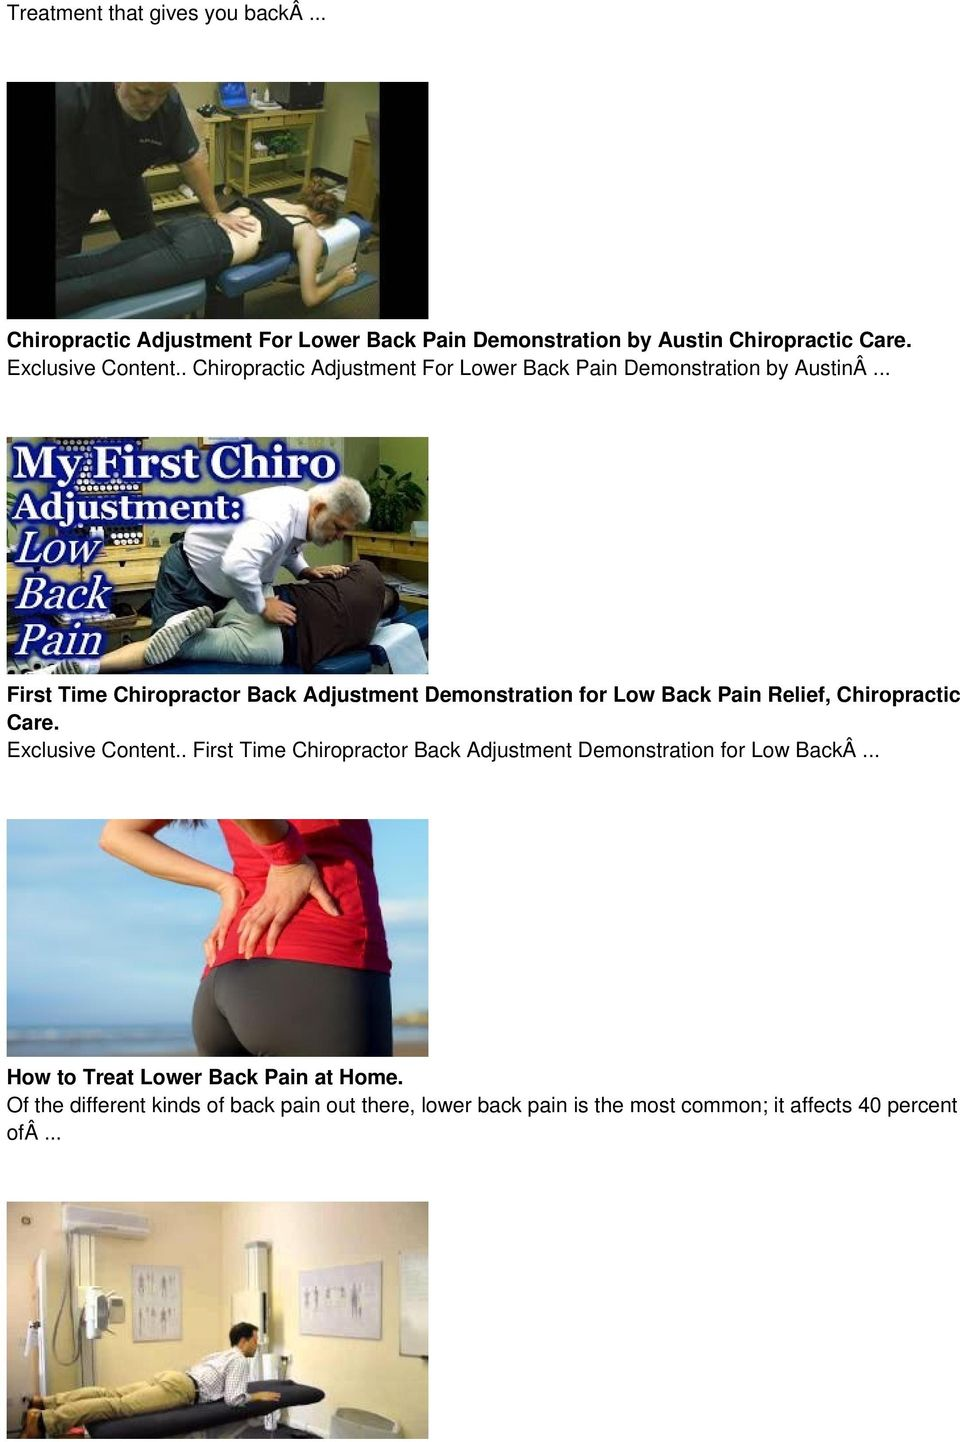 .. First Time Chiropractor Back Adjustment Demonstration for Low Back Pain Relief, Chiropractic Care. Exclusive Content.